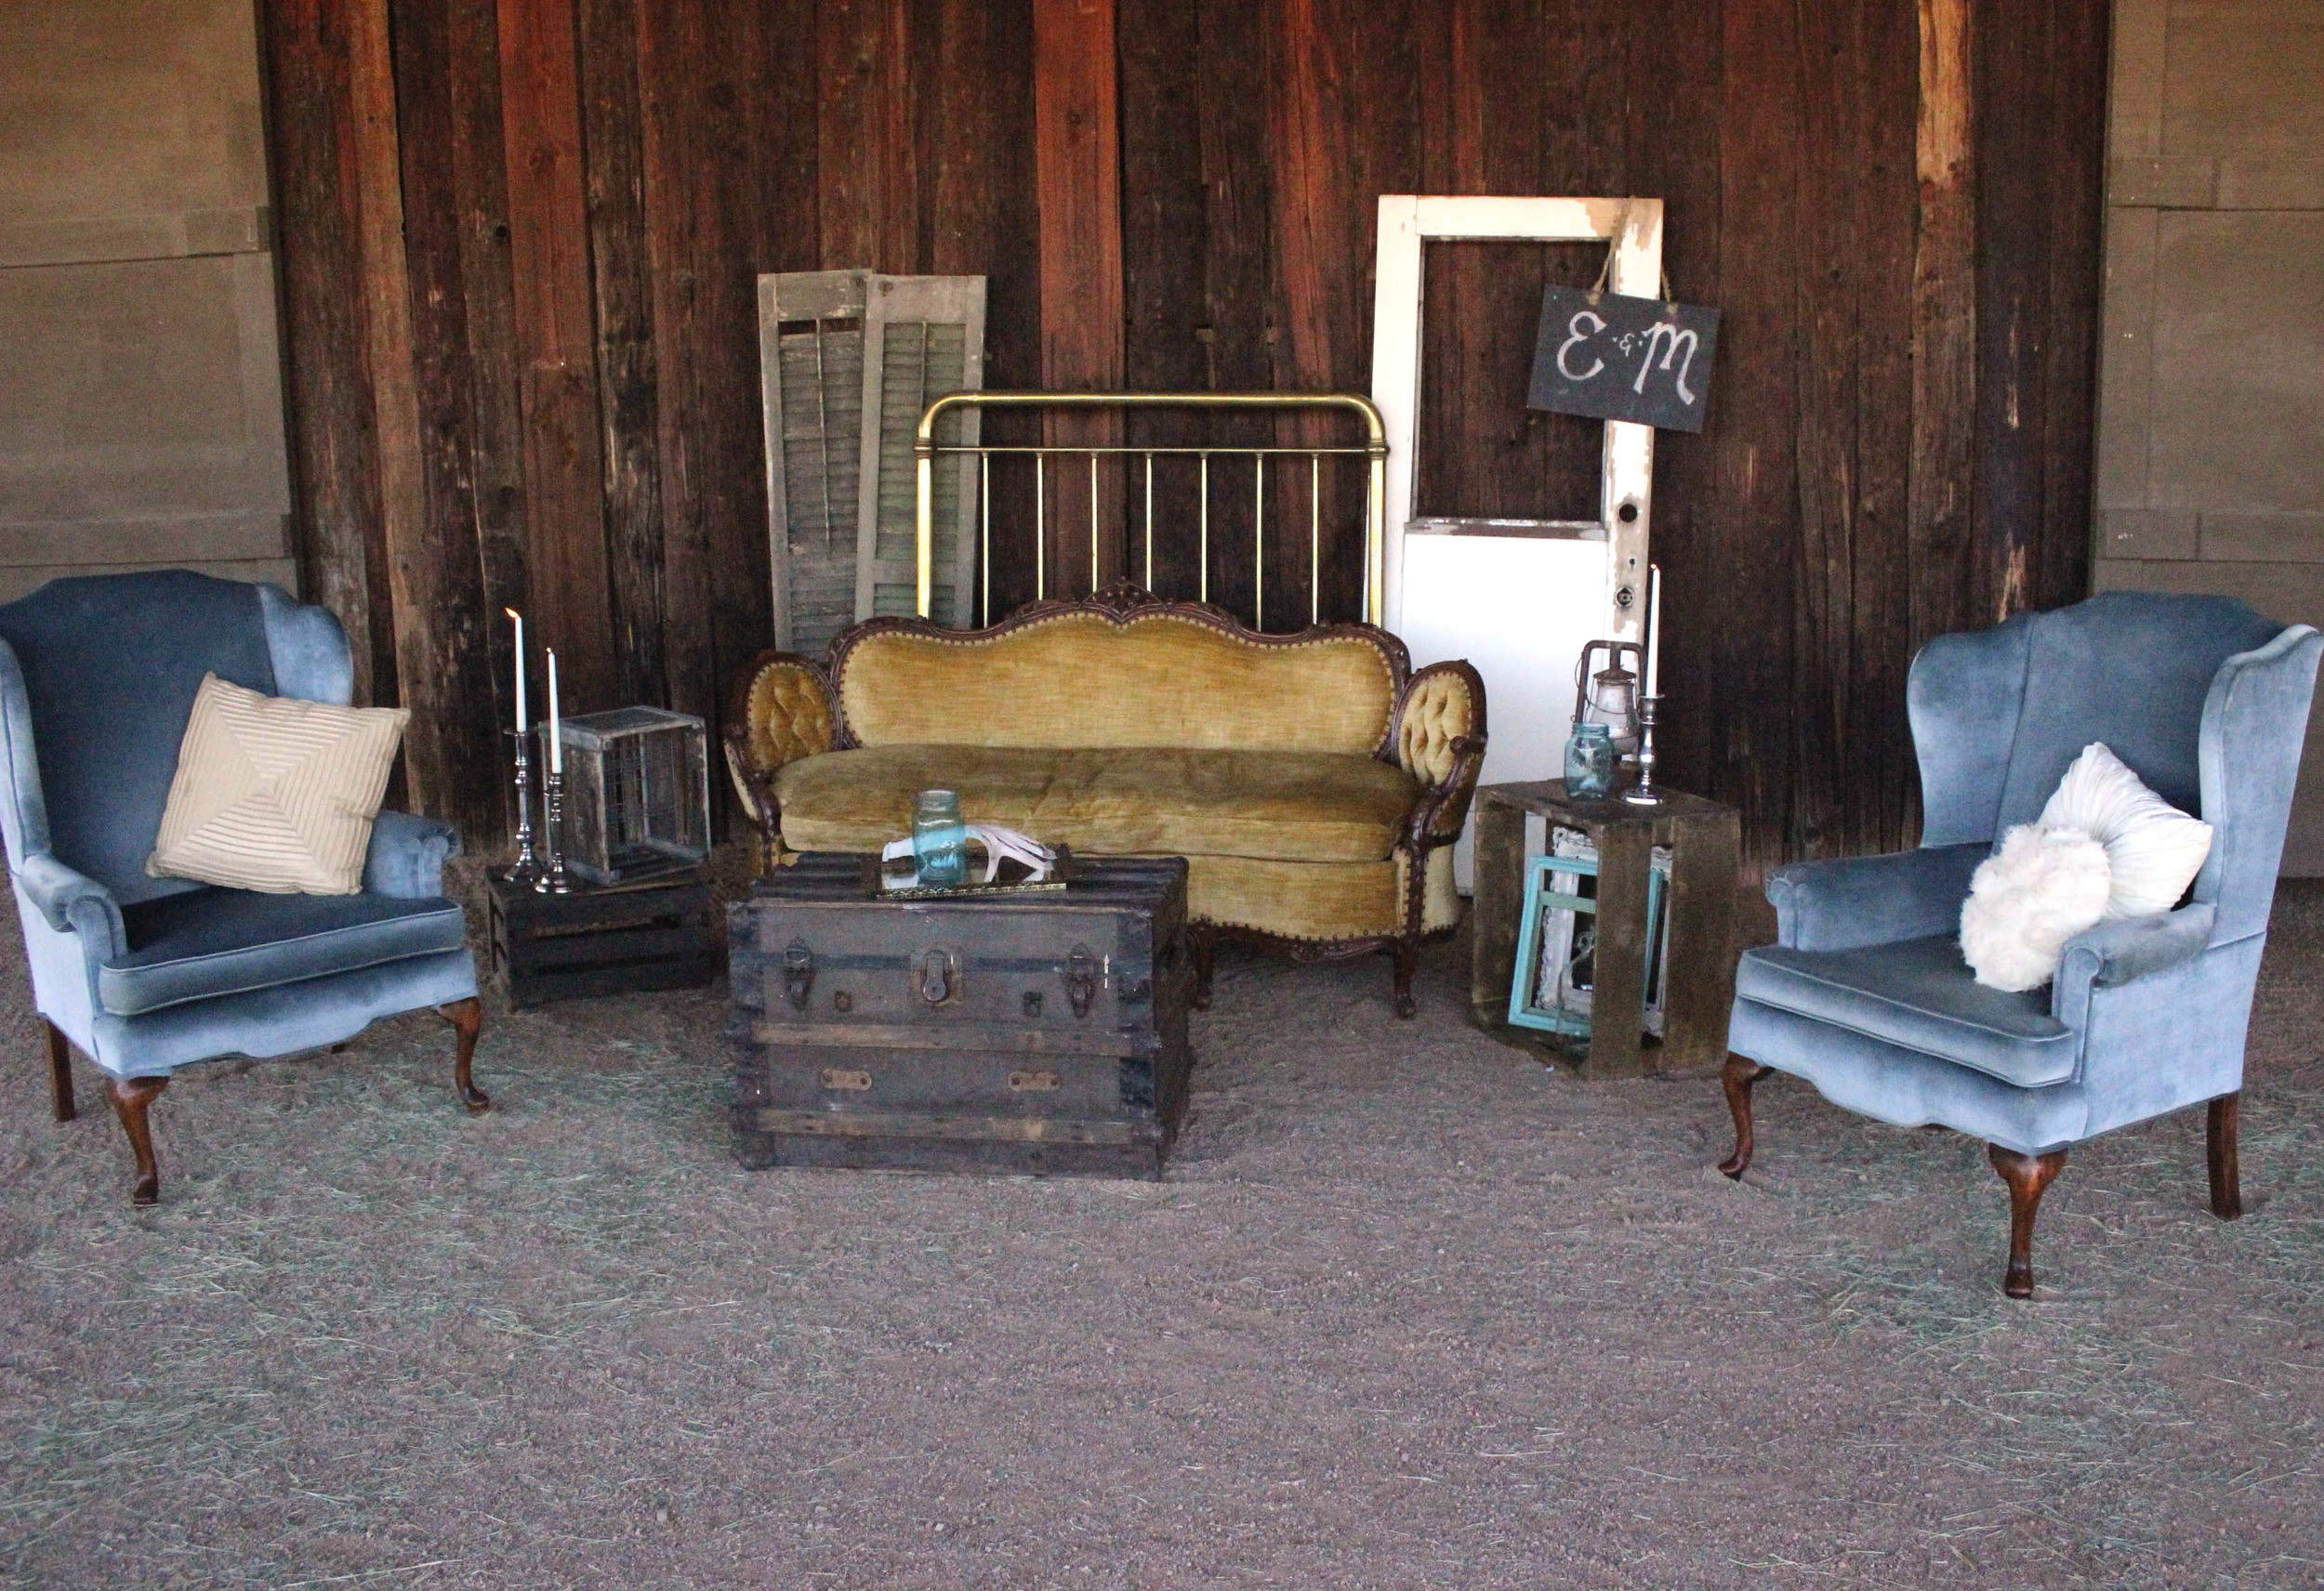 Vintage Lounge setting with Johnny and June Chairs and Belle couch